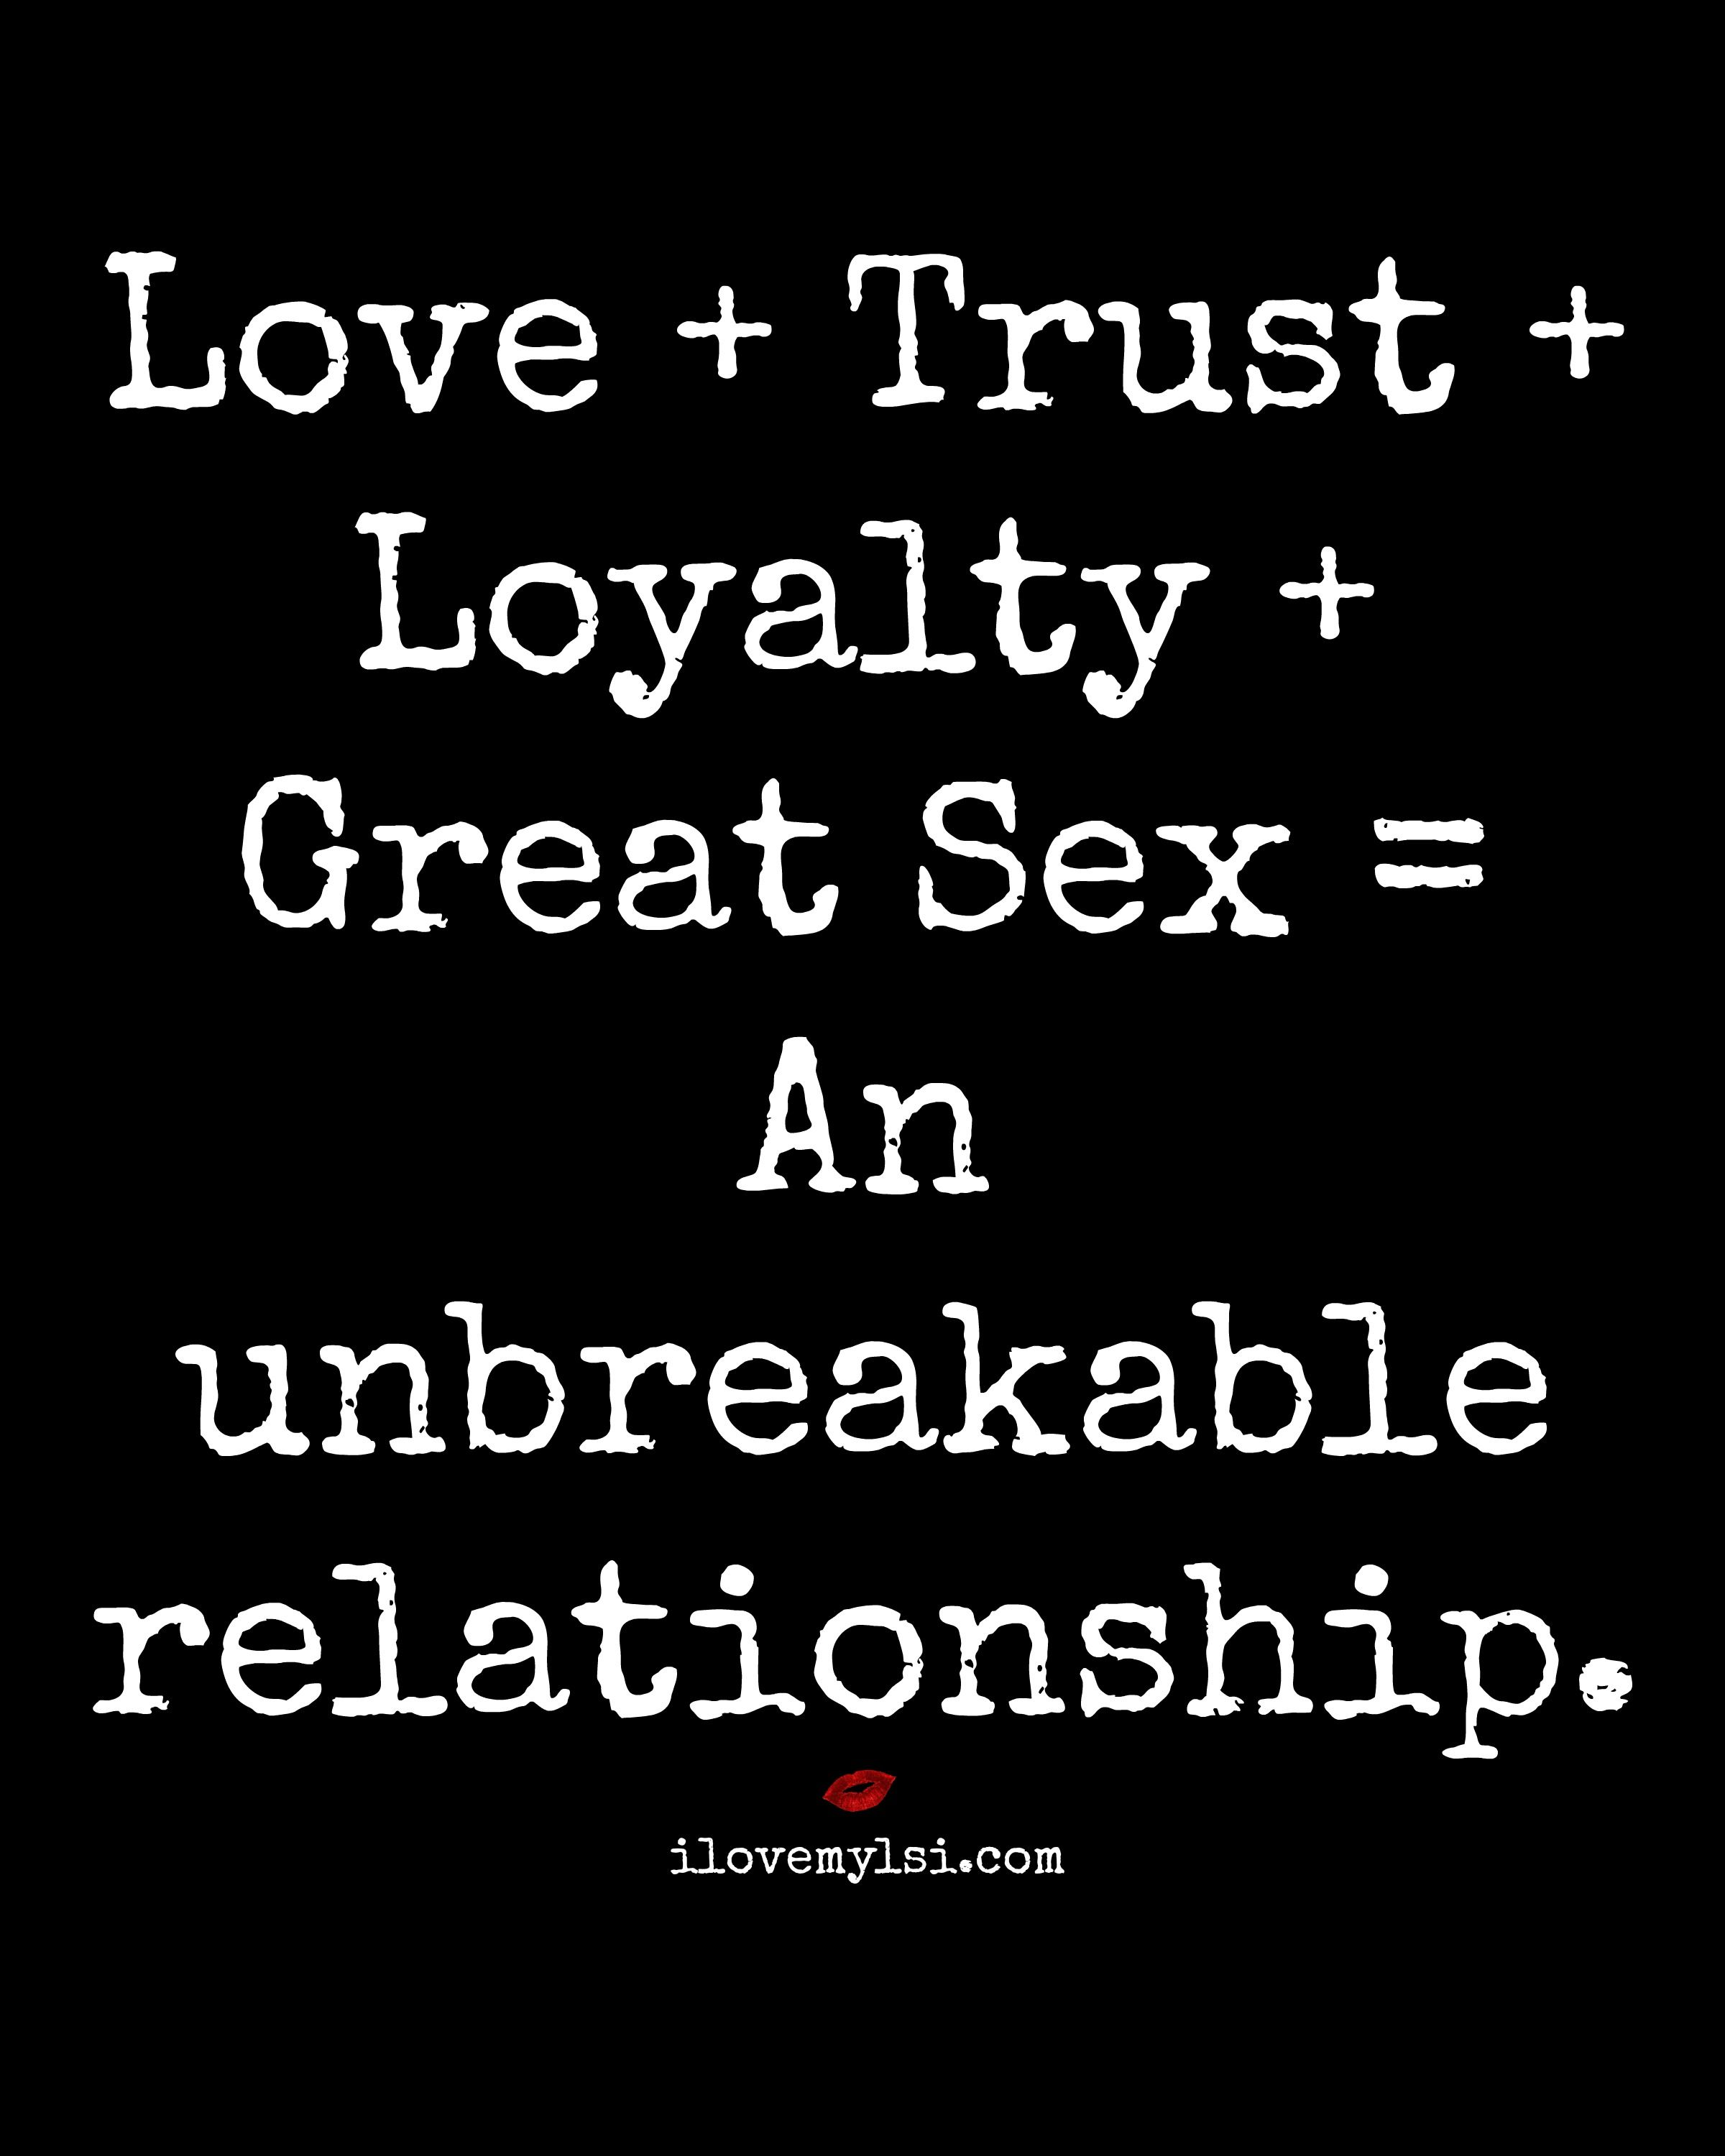 Unbreakable Love Quotes Love  Trust  Loyalty  Great  An Unbreakable Relationship